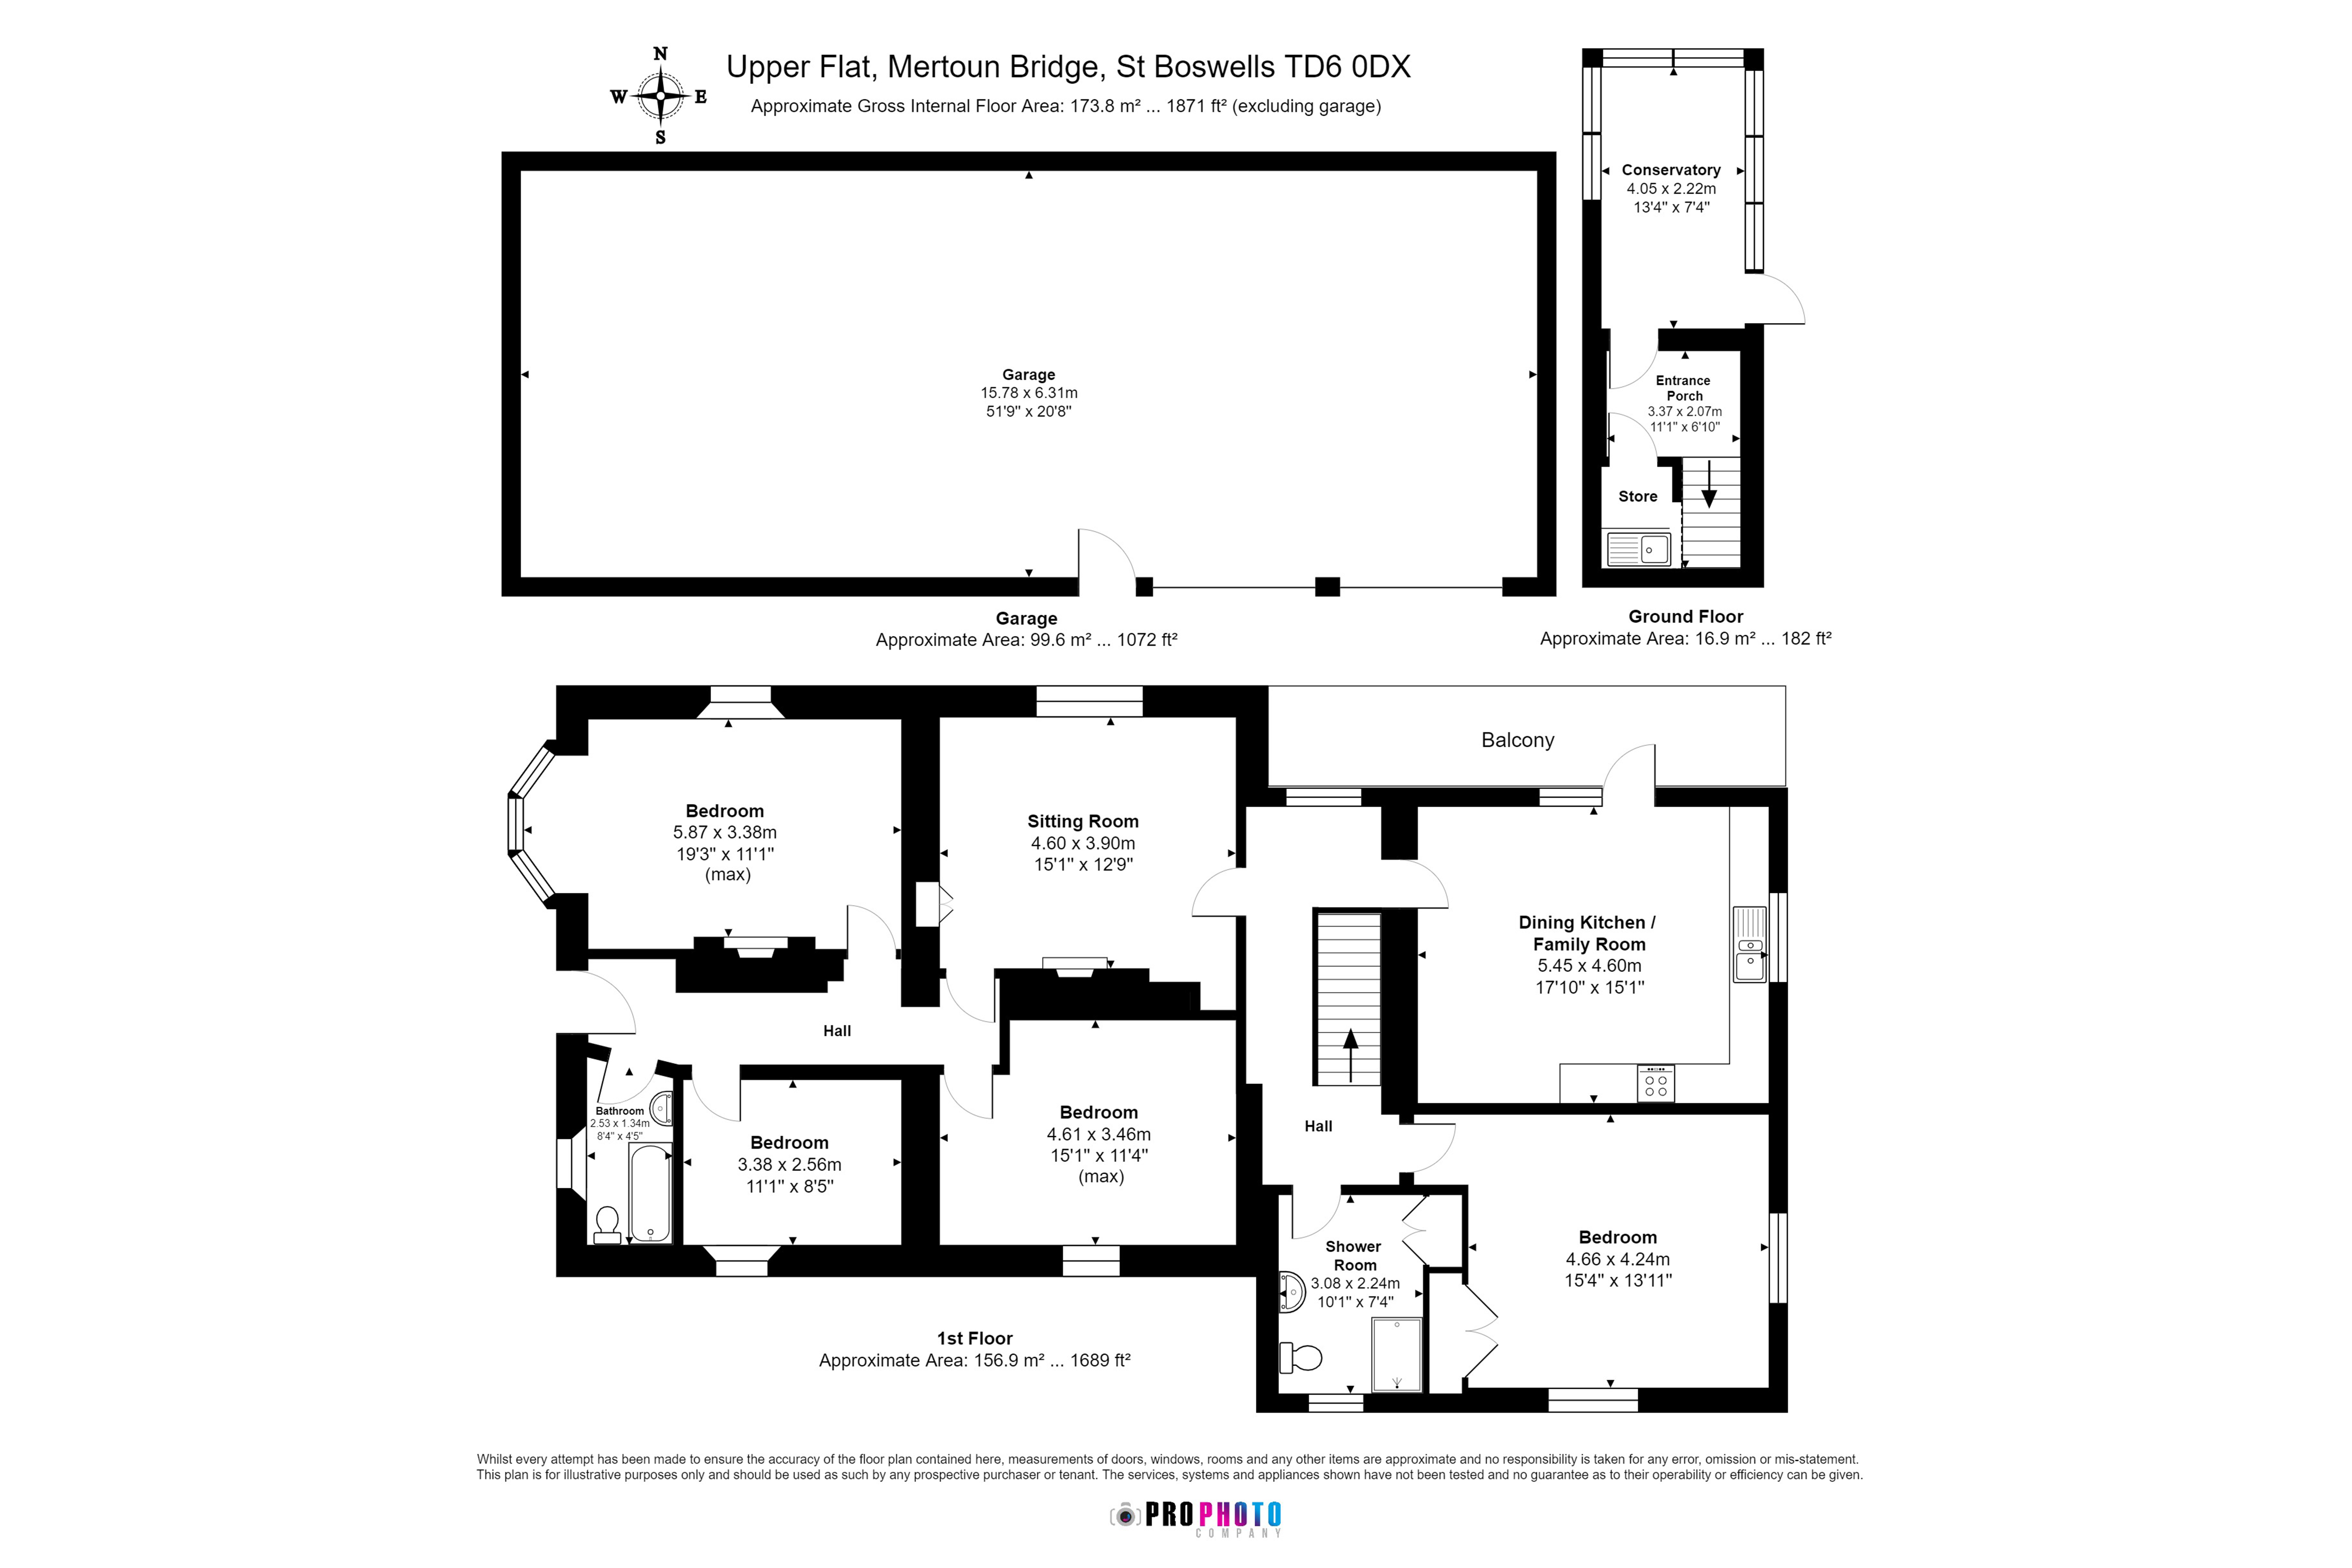 Floorplans for Top Flat, Mertoun Bridge, St. Boswells, TD6